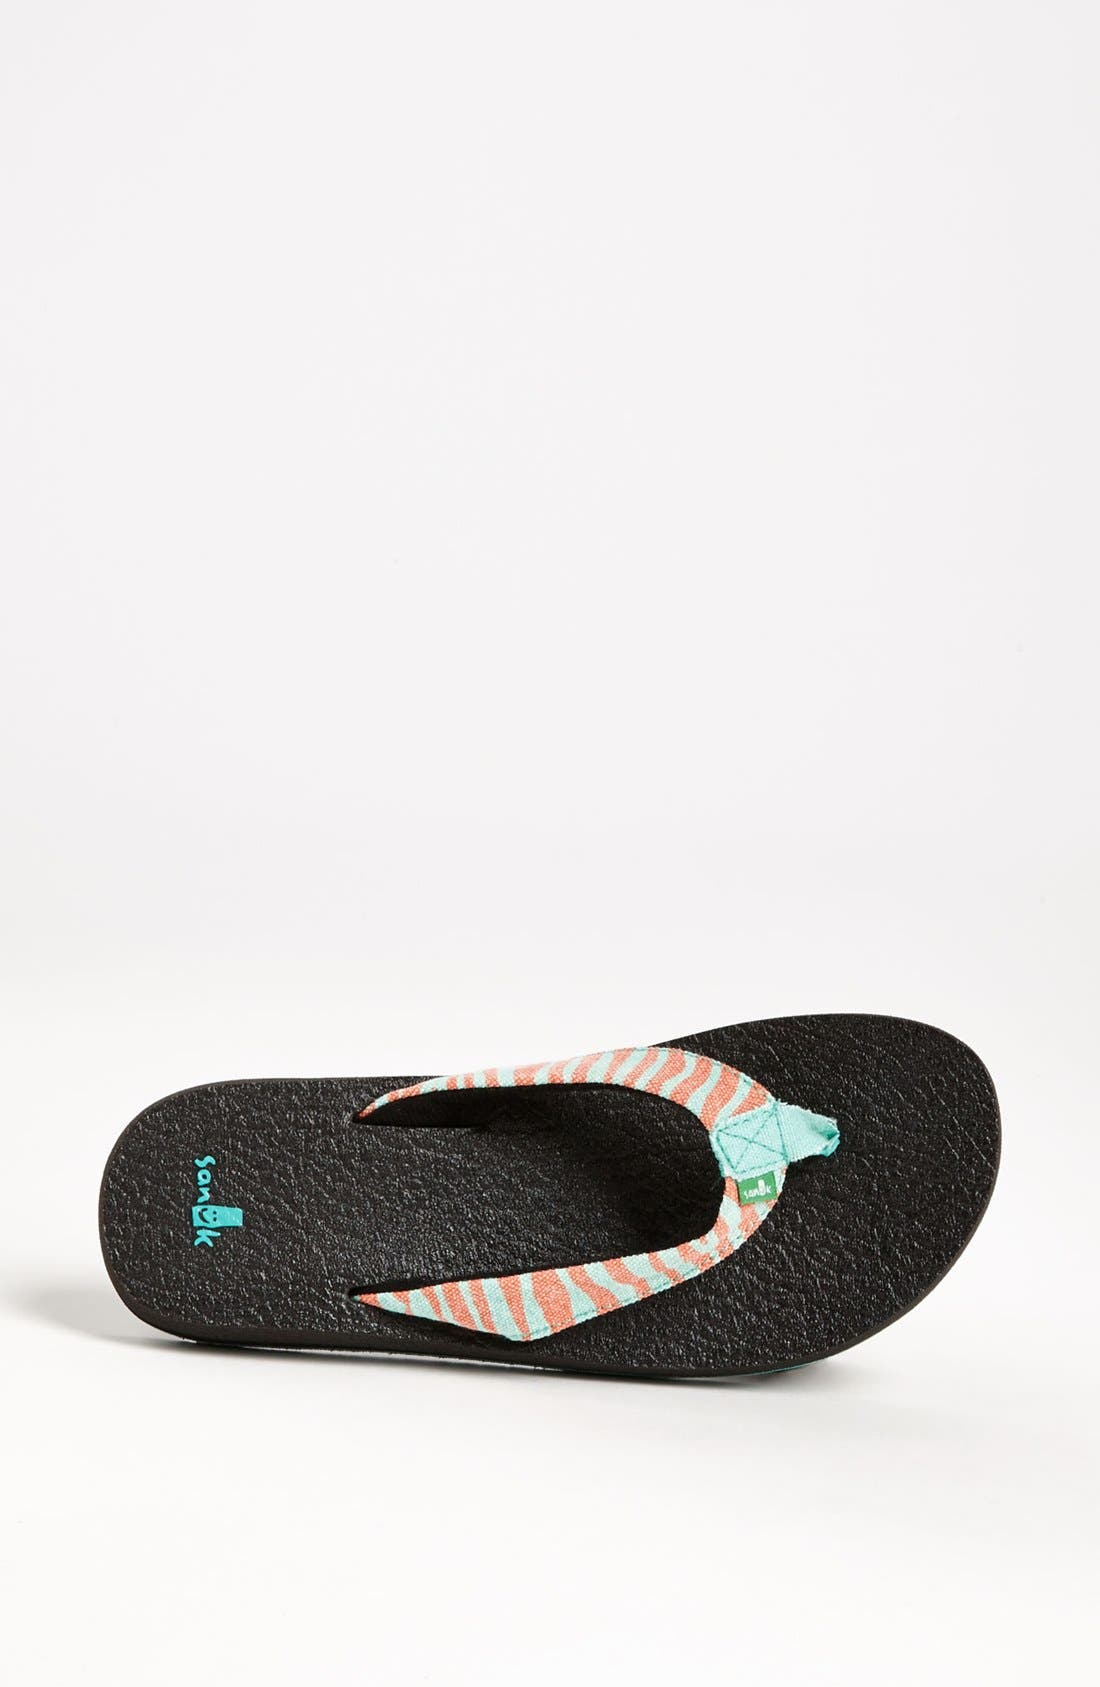 Alternate Image 3  - Sanuk 'Yoga Wildlife' Flip Flop (Women)